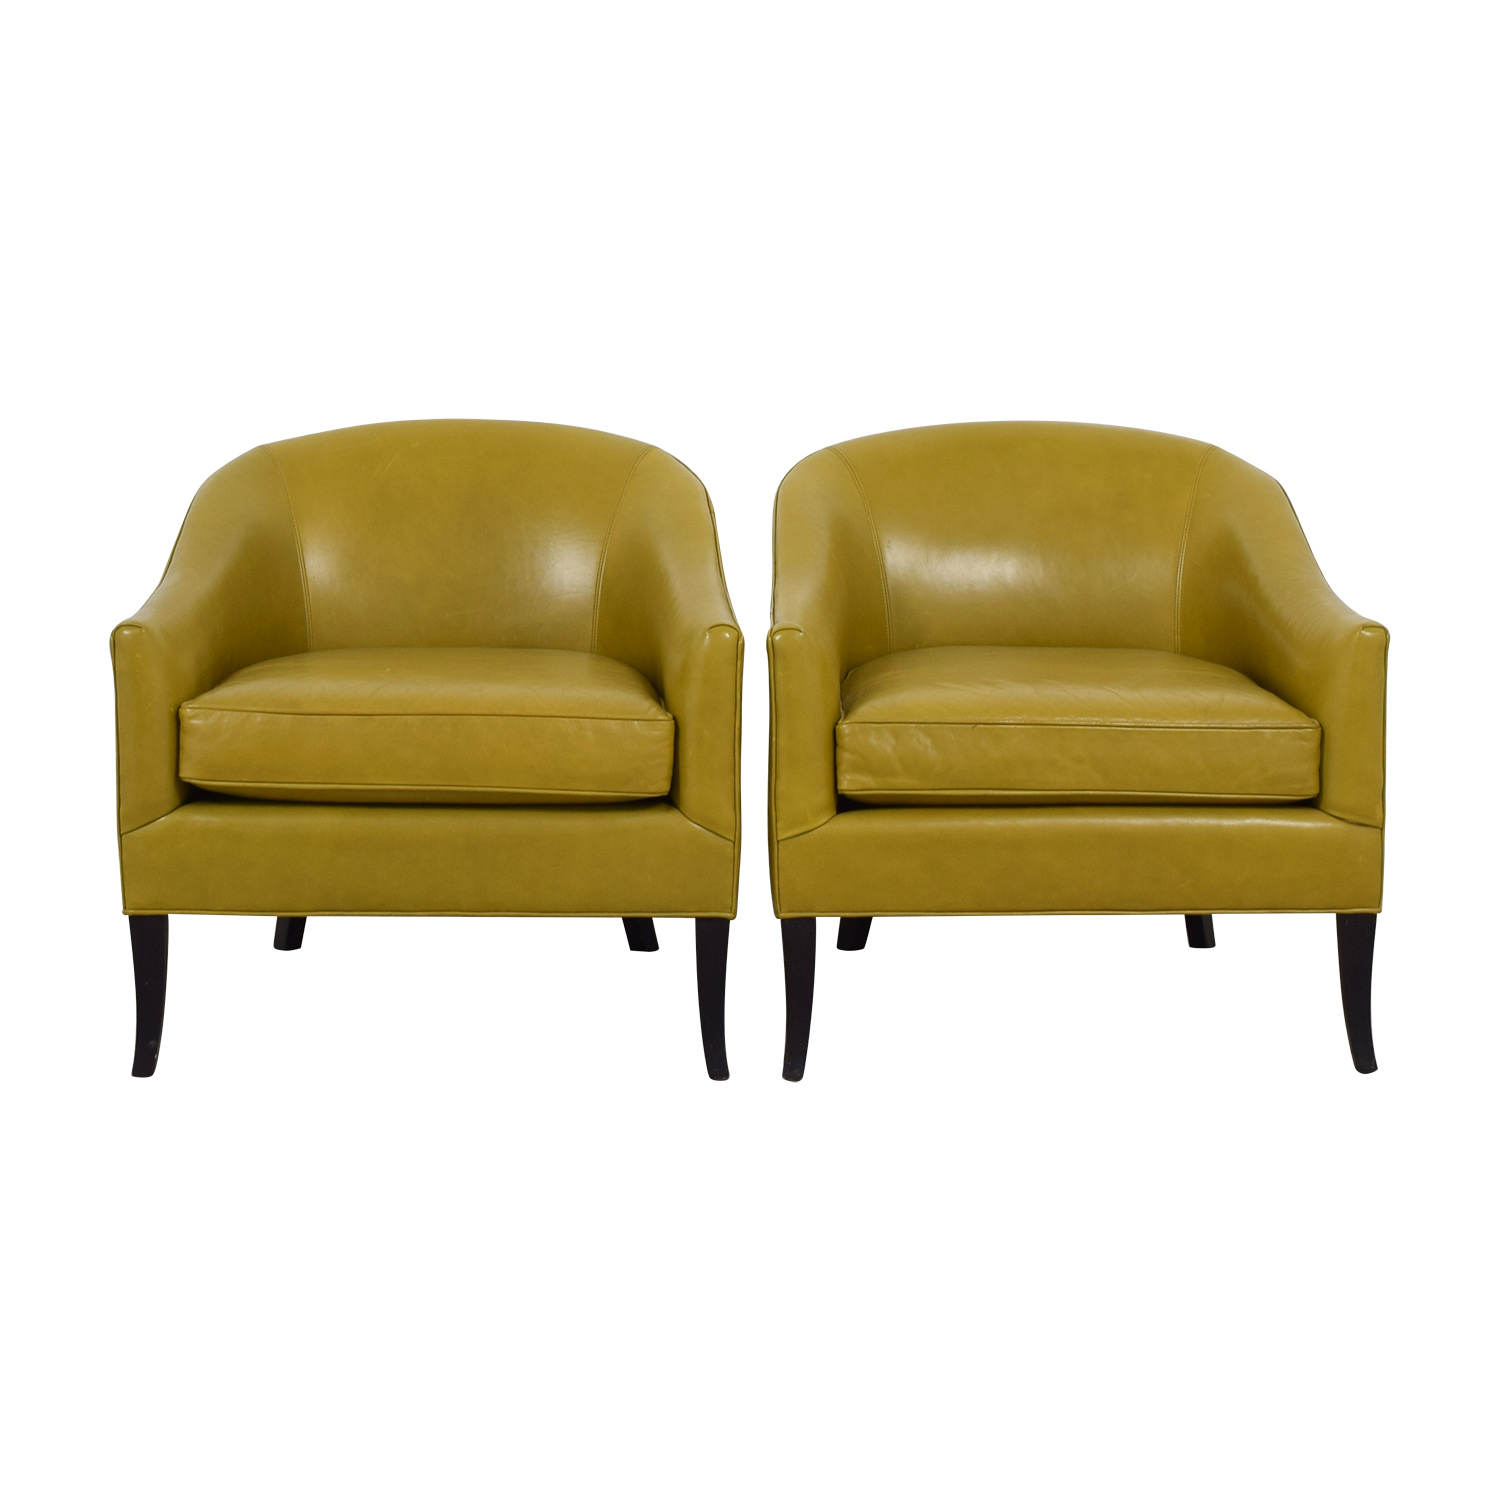 Crate & Barrel Crate & Barrel Lemon Green Leather Side Chairs Accent Chairs